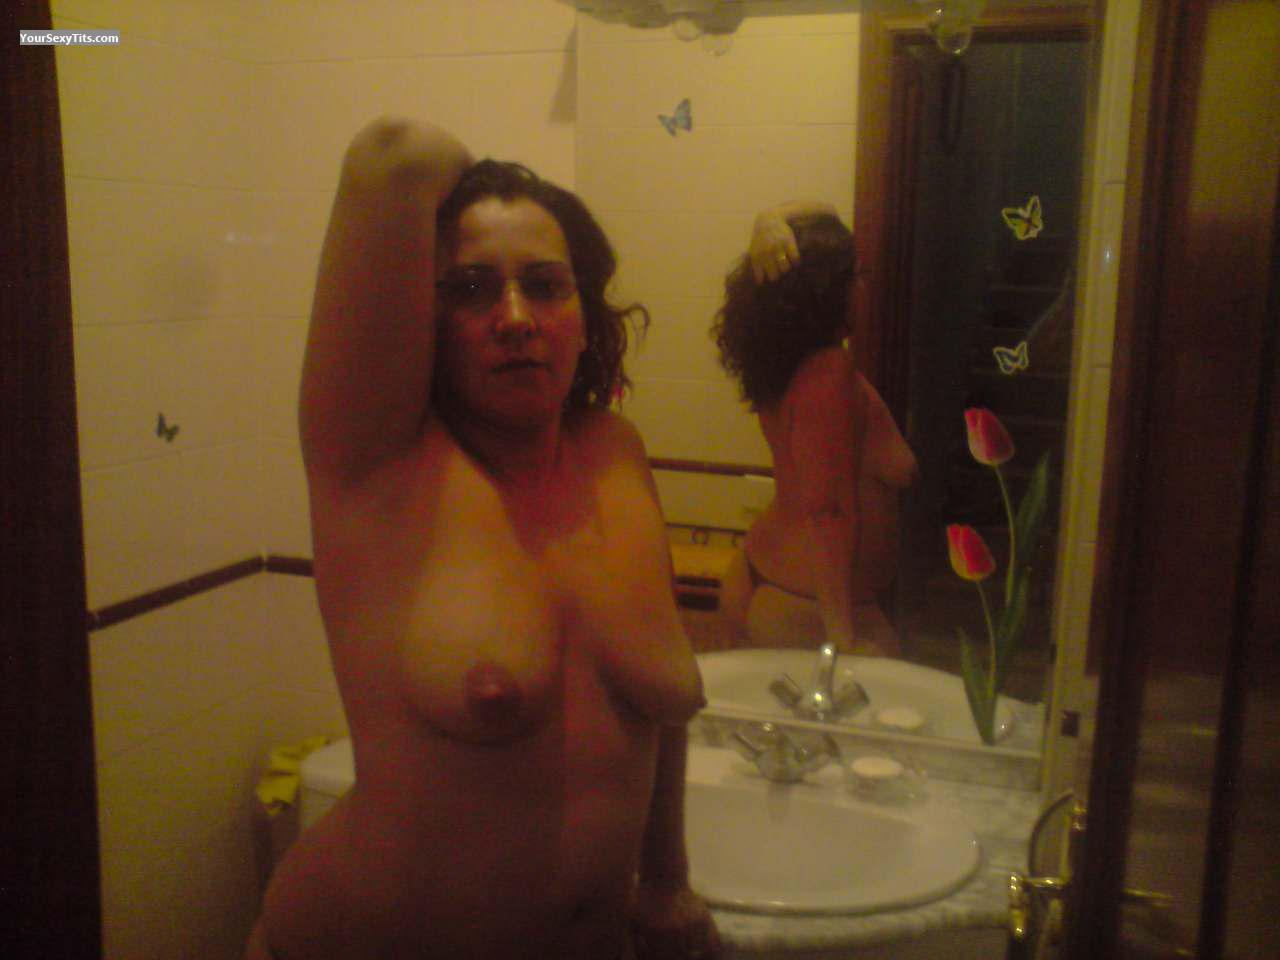 Tit Flash: Medium Tits - Topless Charco from Spain